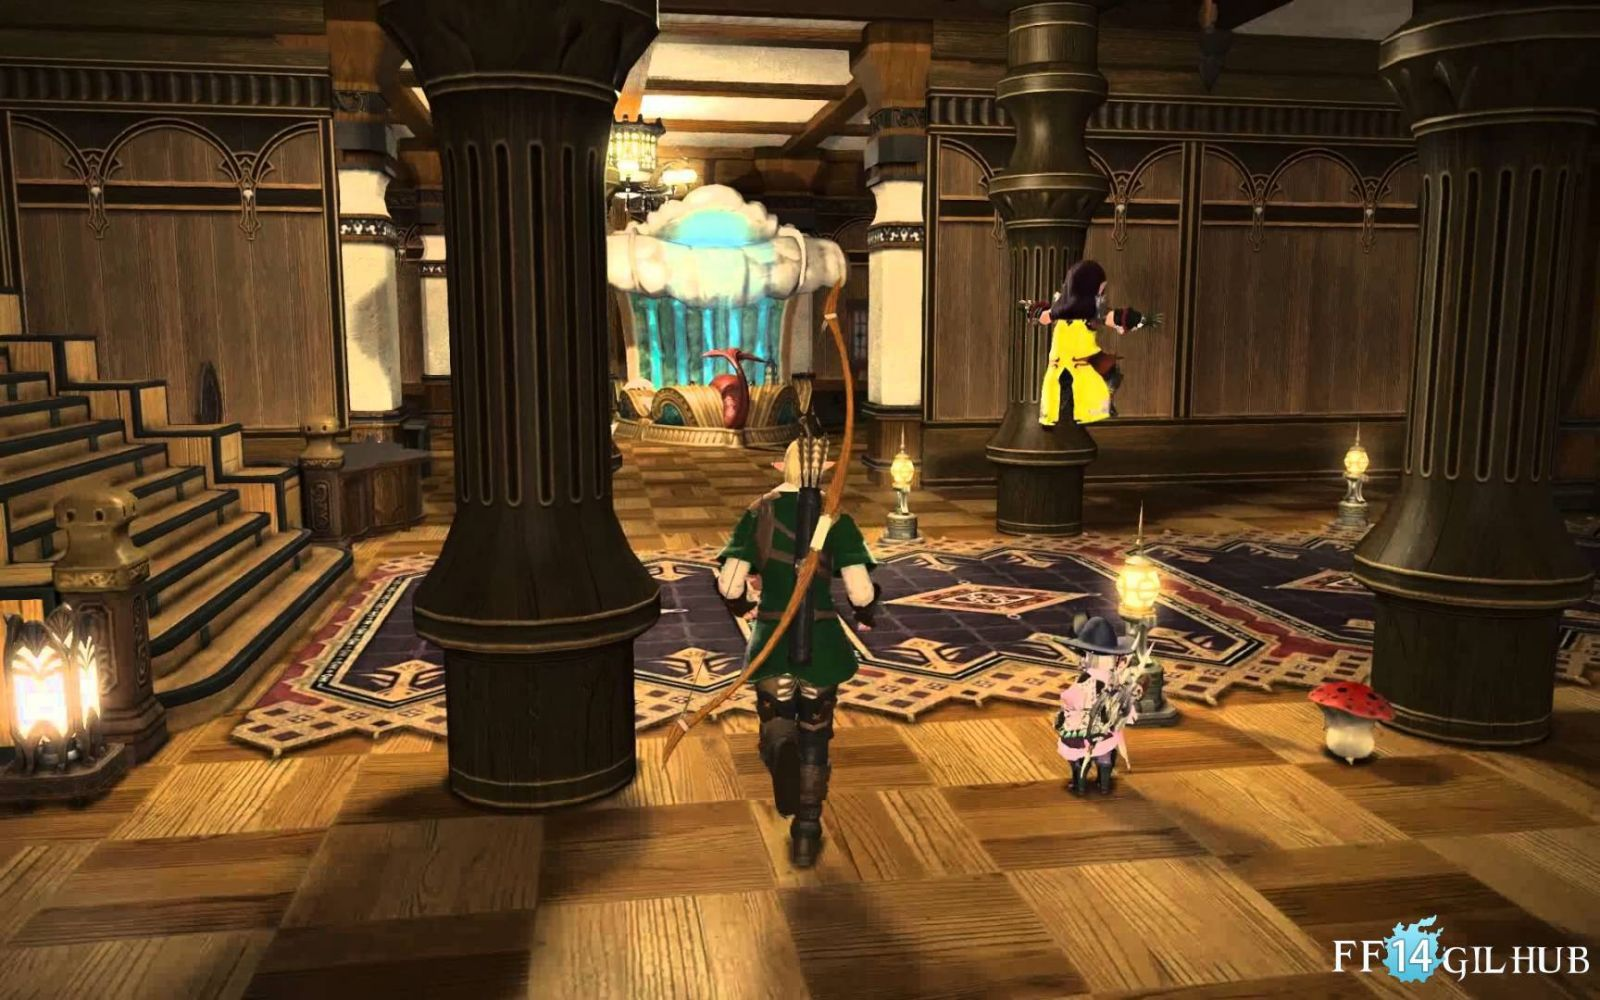 ffxiv houses (With images) Solutions, Patches, House